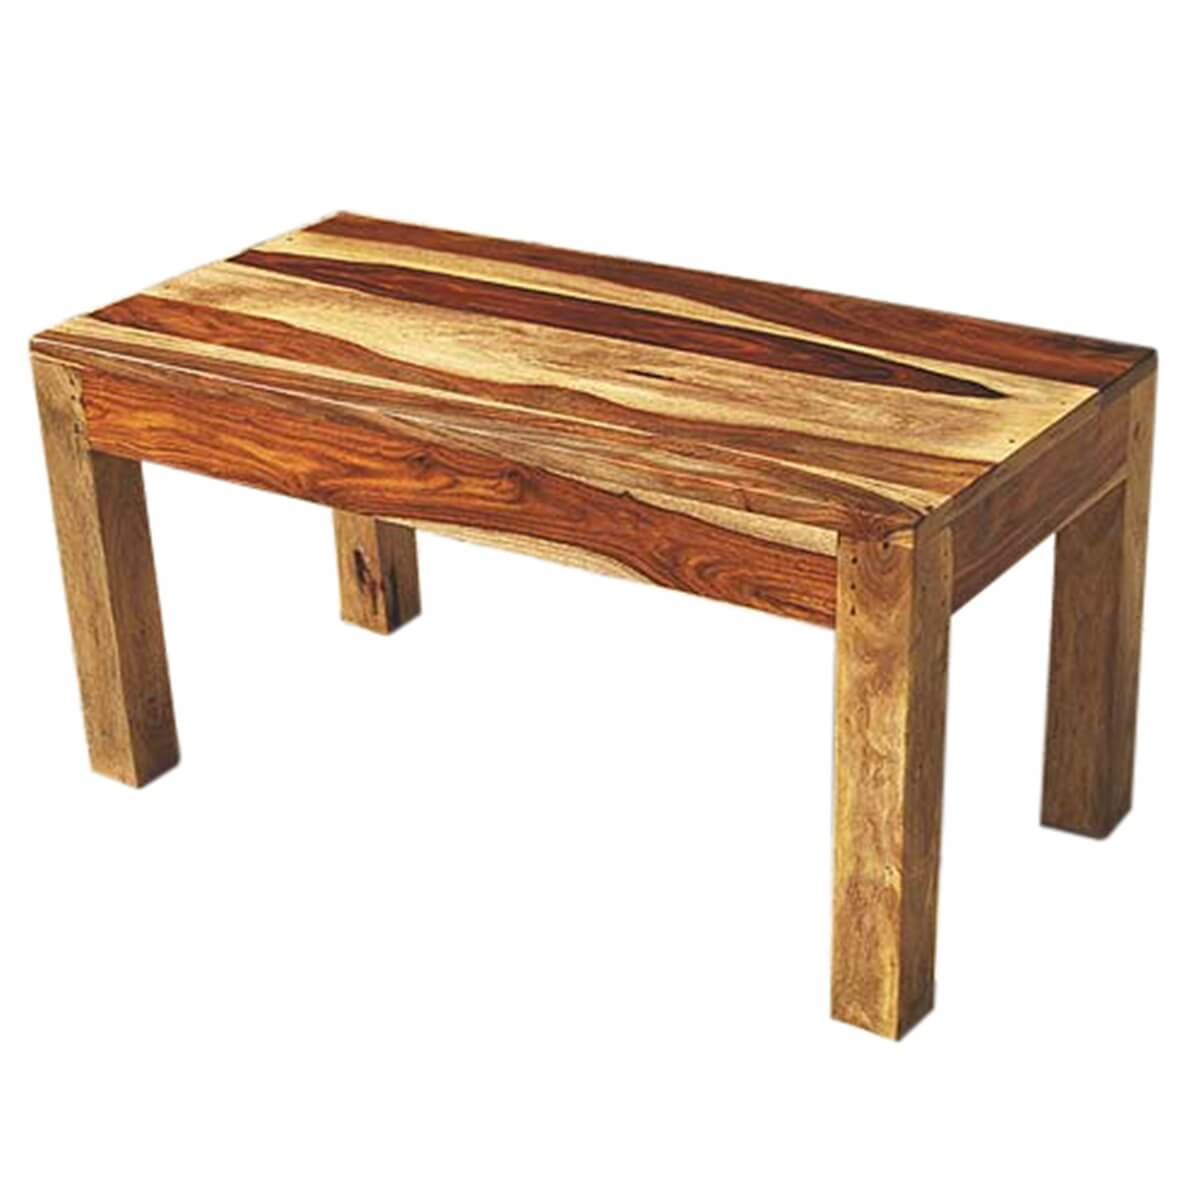 Couchtisch Rechteckig Holz Mission Style Solid Wood Rectangular Coffee Table